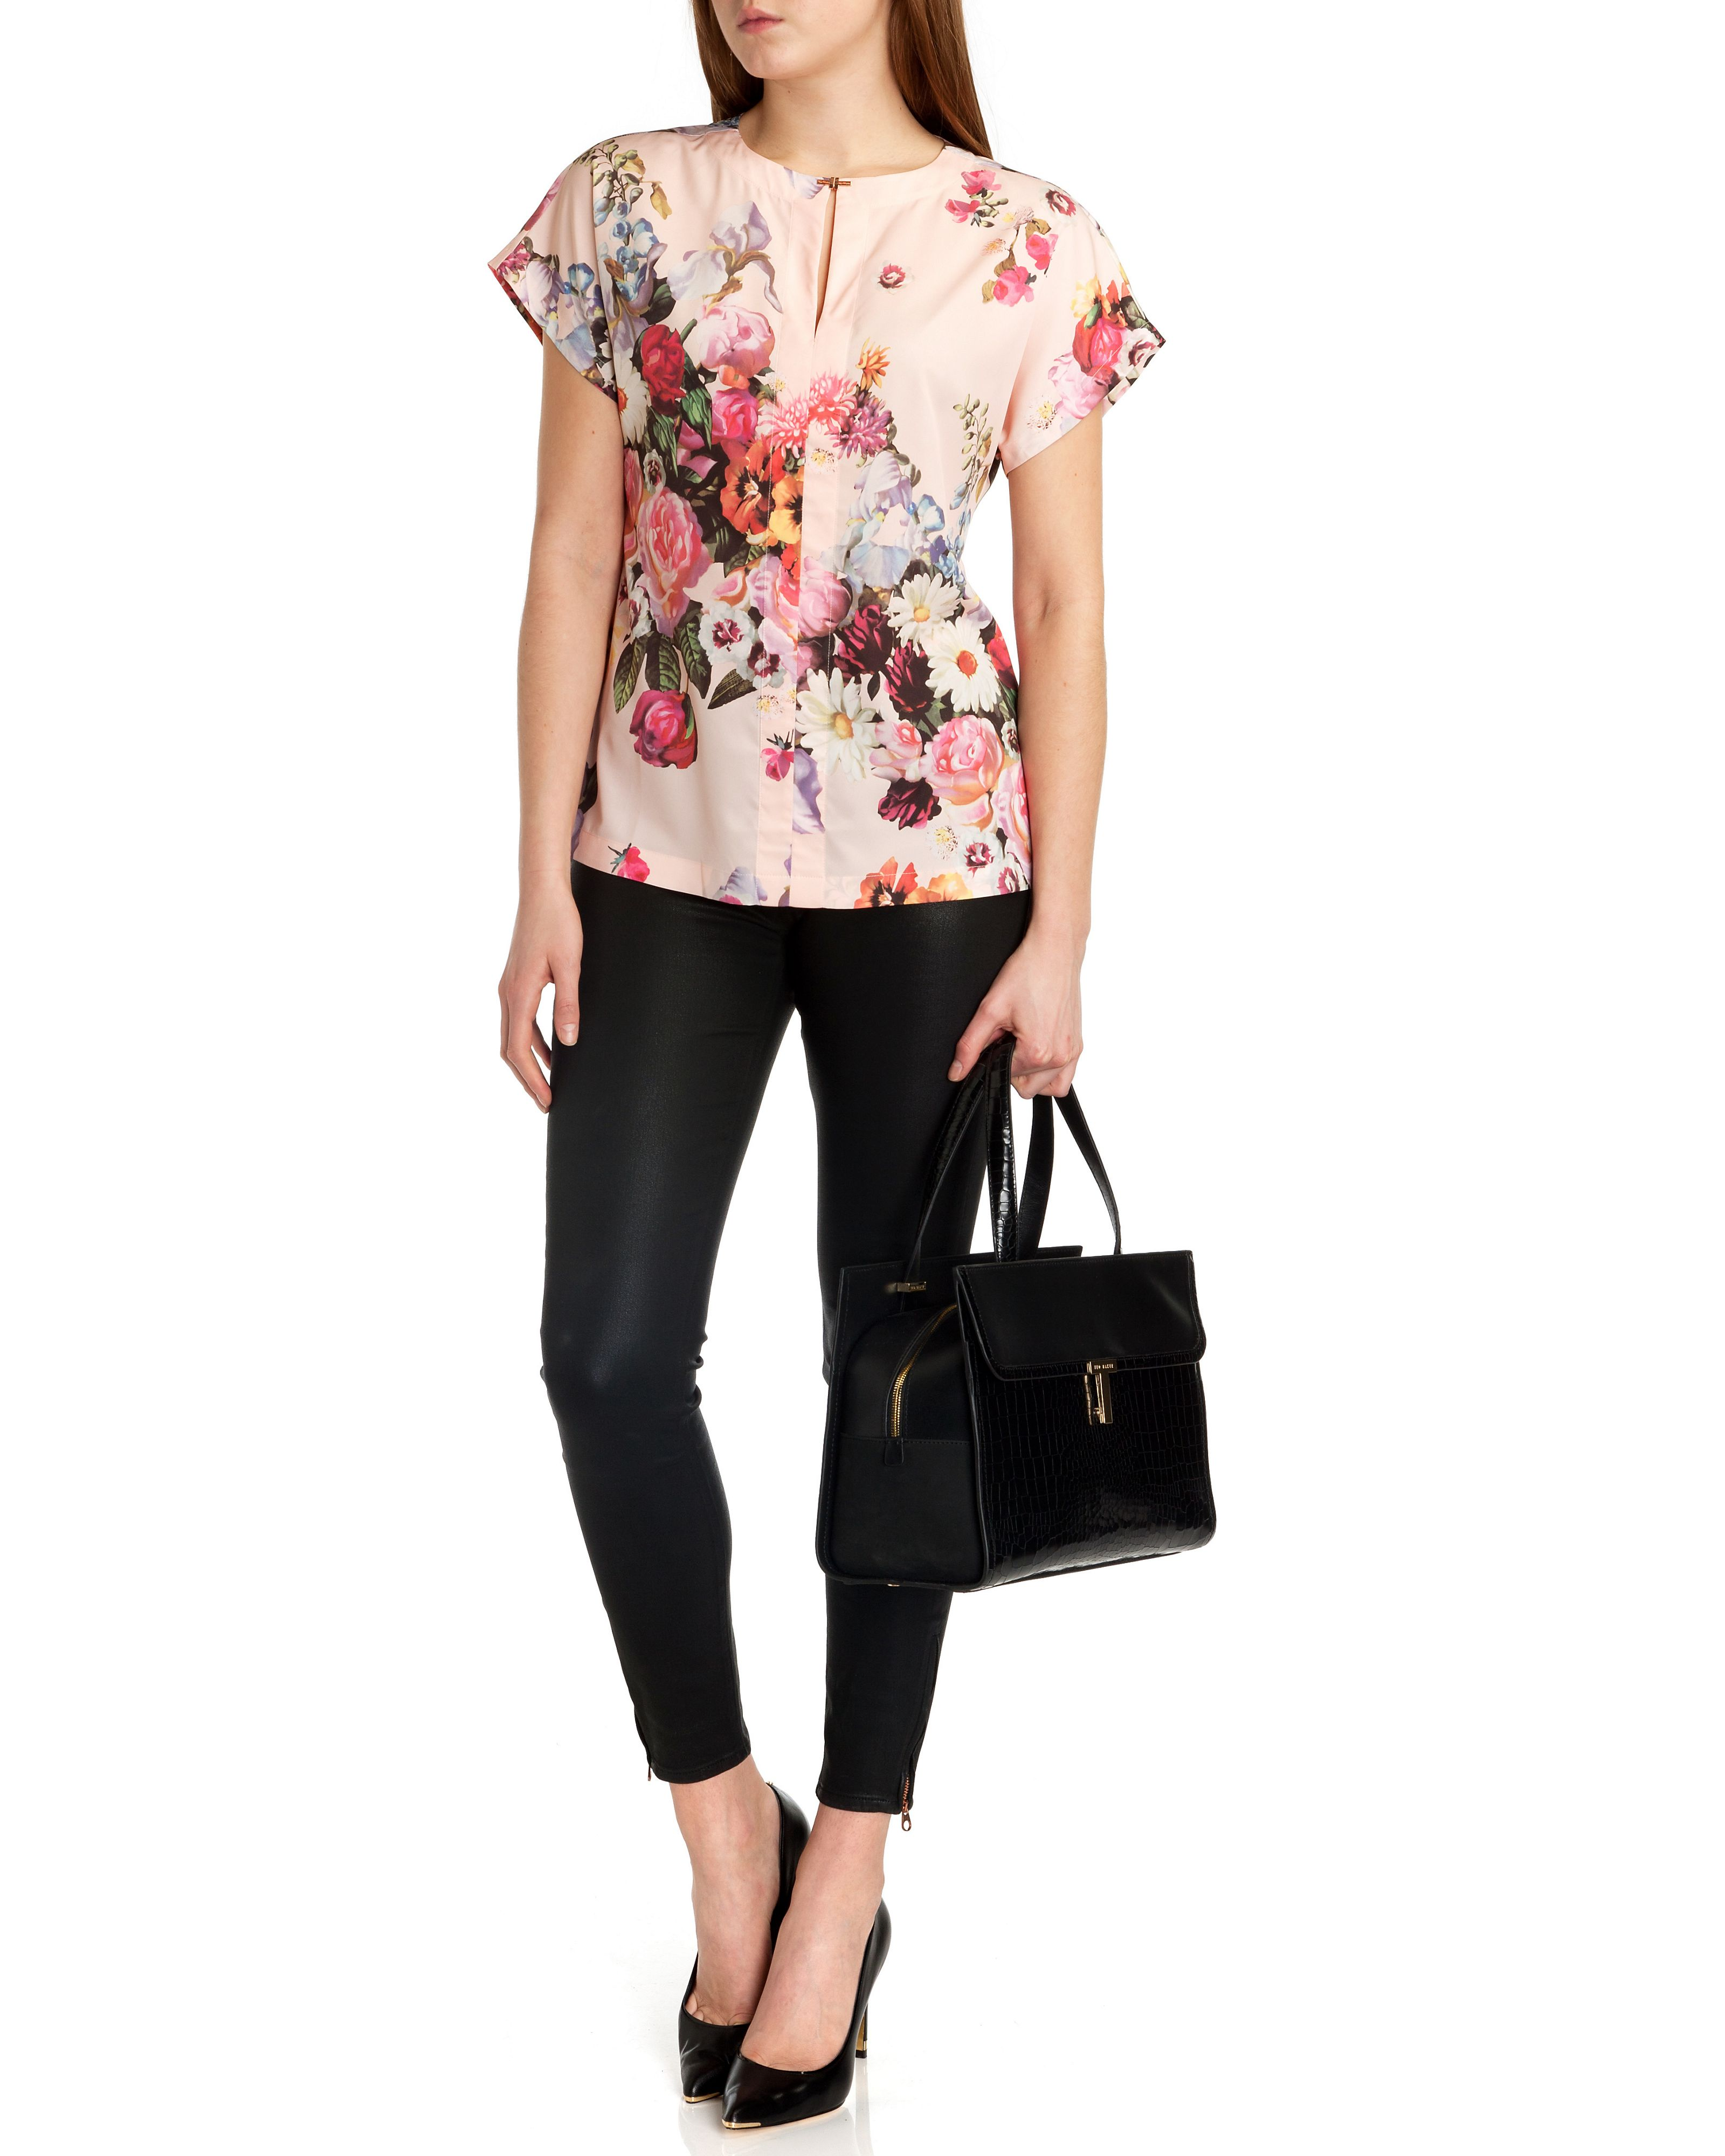 Edweena nude oil painting print top